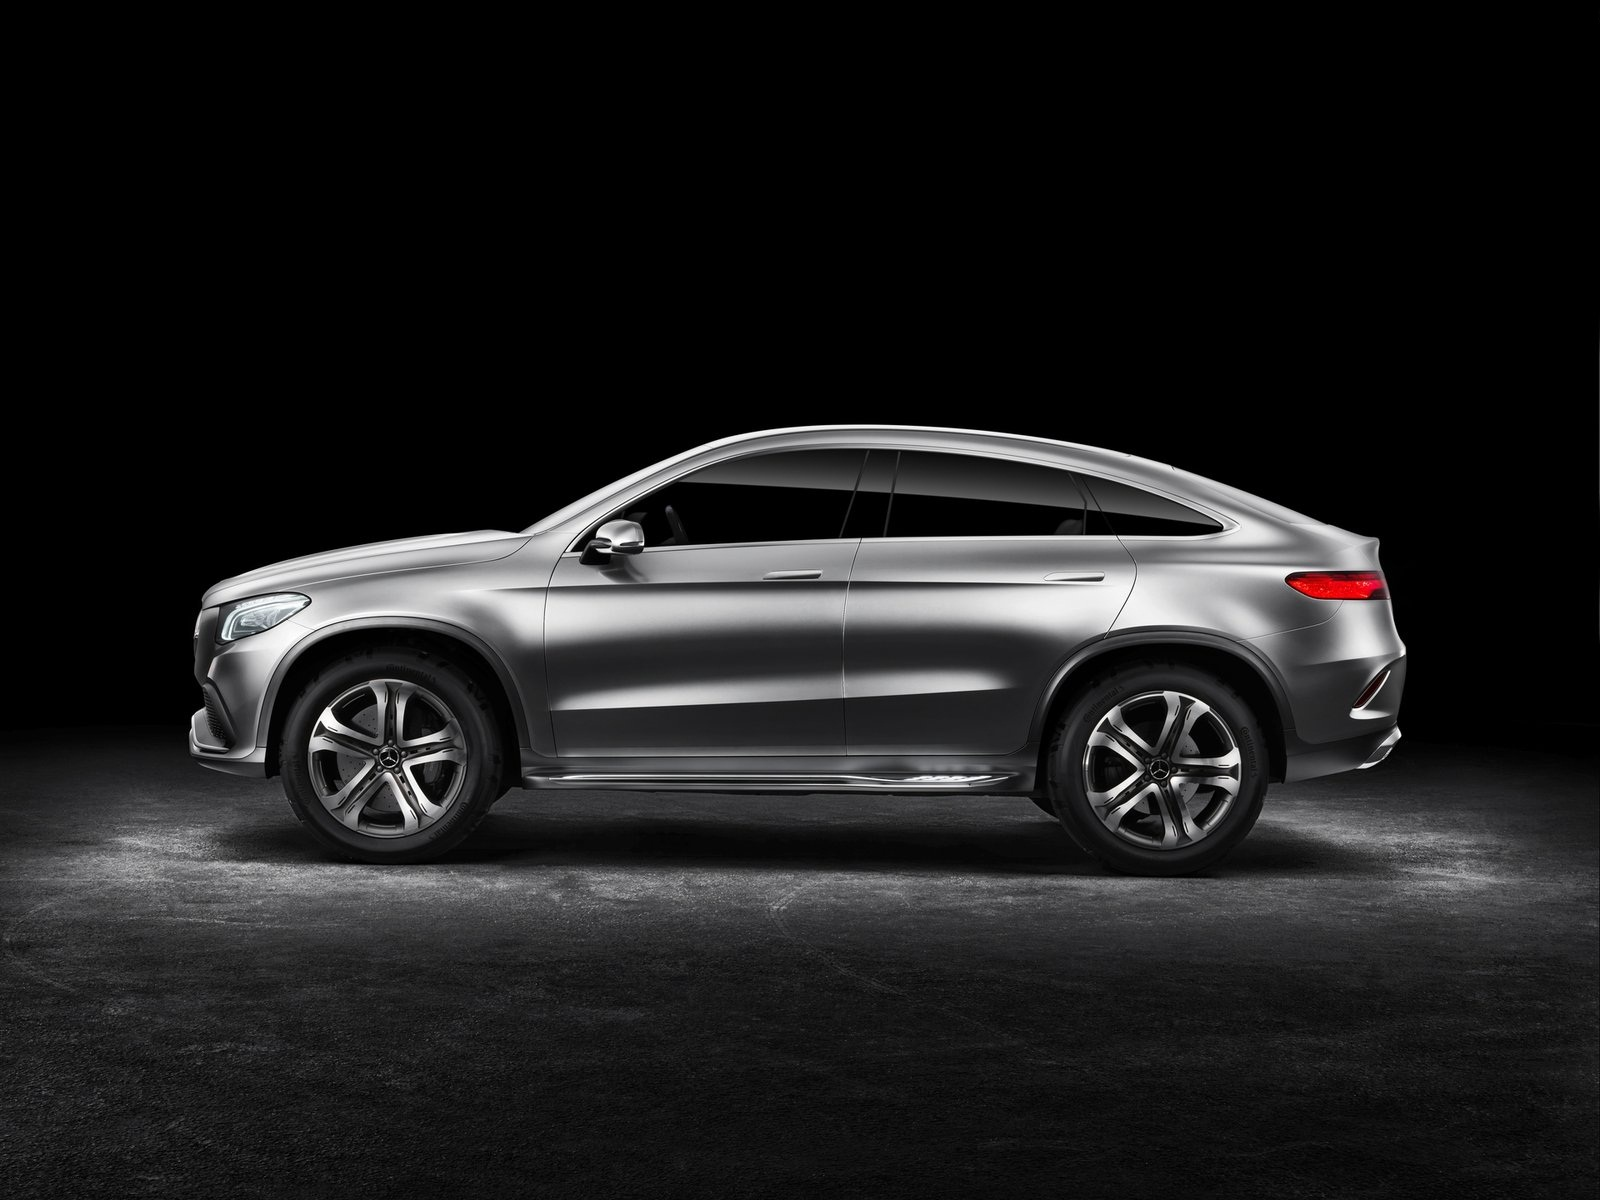 Mercedes Benz Coupe SUV